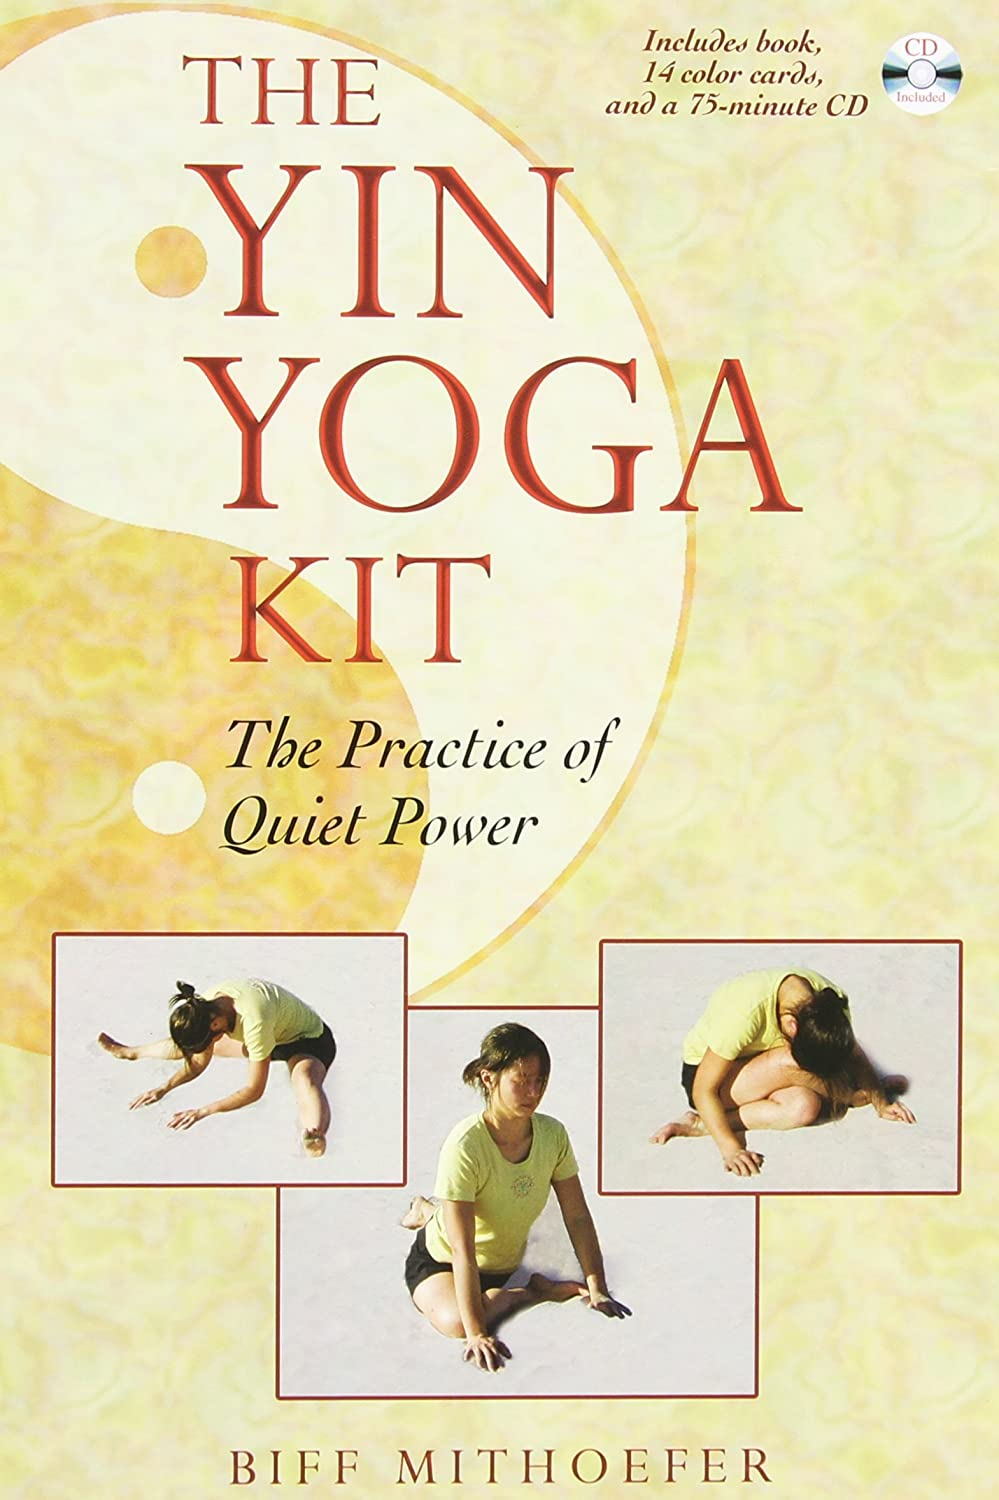 The Yin Yoga Kit: The Practice of Quiet Power (Boxed Set) by Biff Mithoefer (2006-07-23)